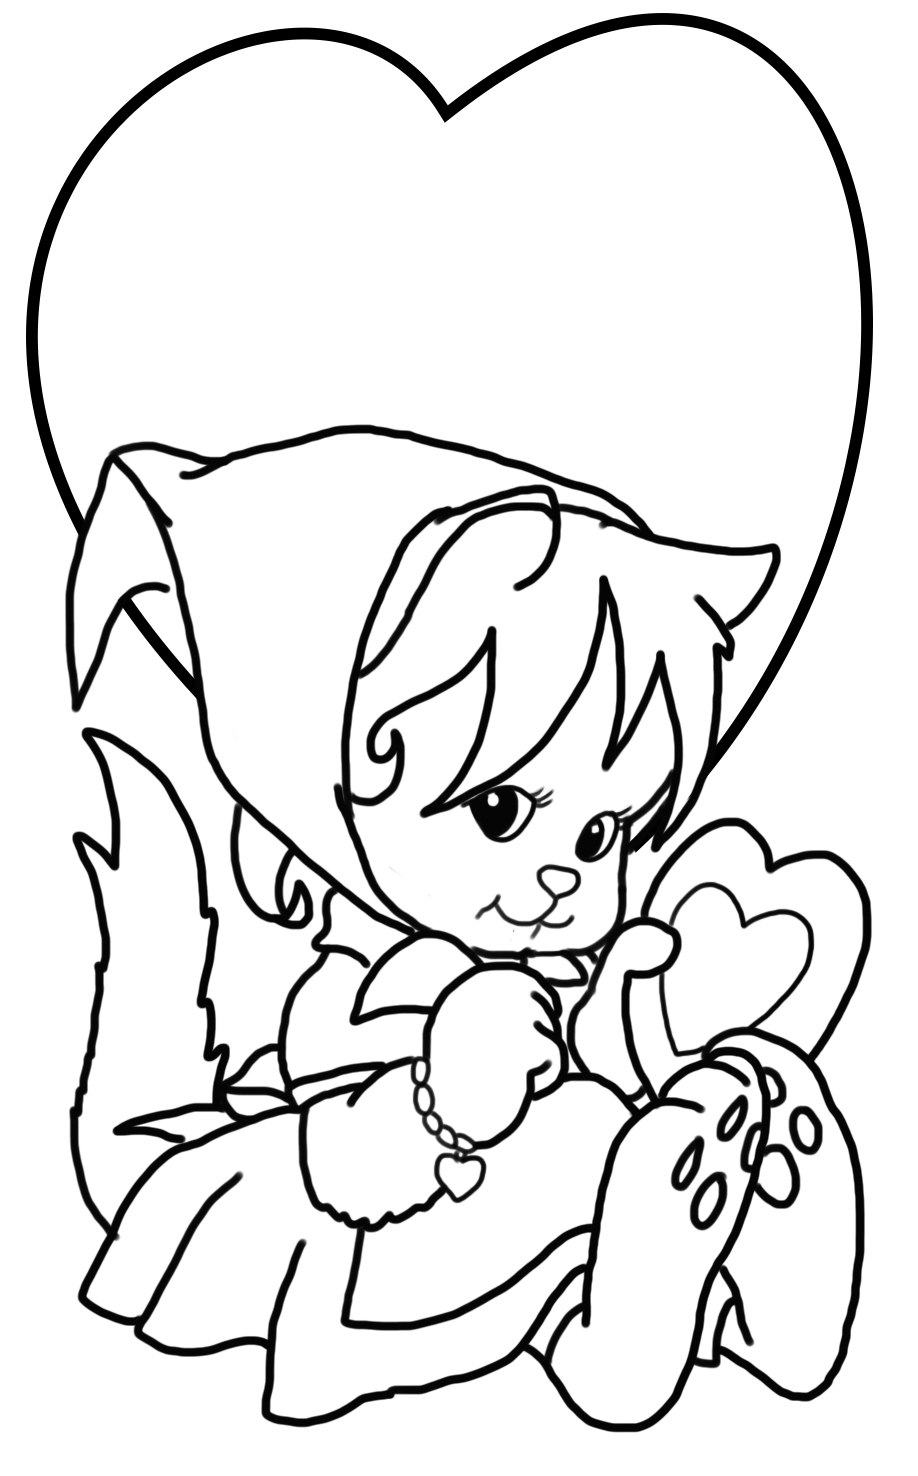 Valentine coloring page with cat and hearts